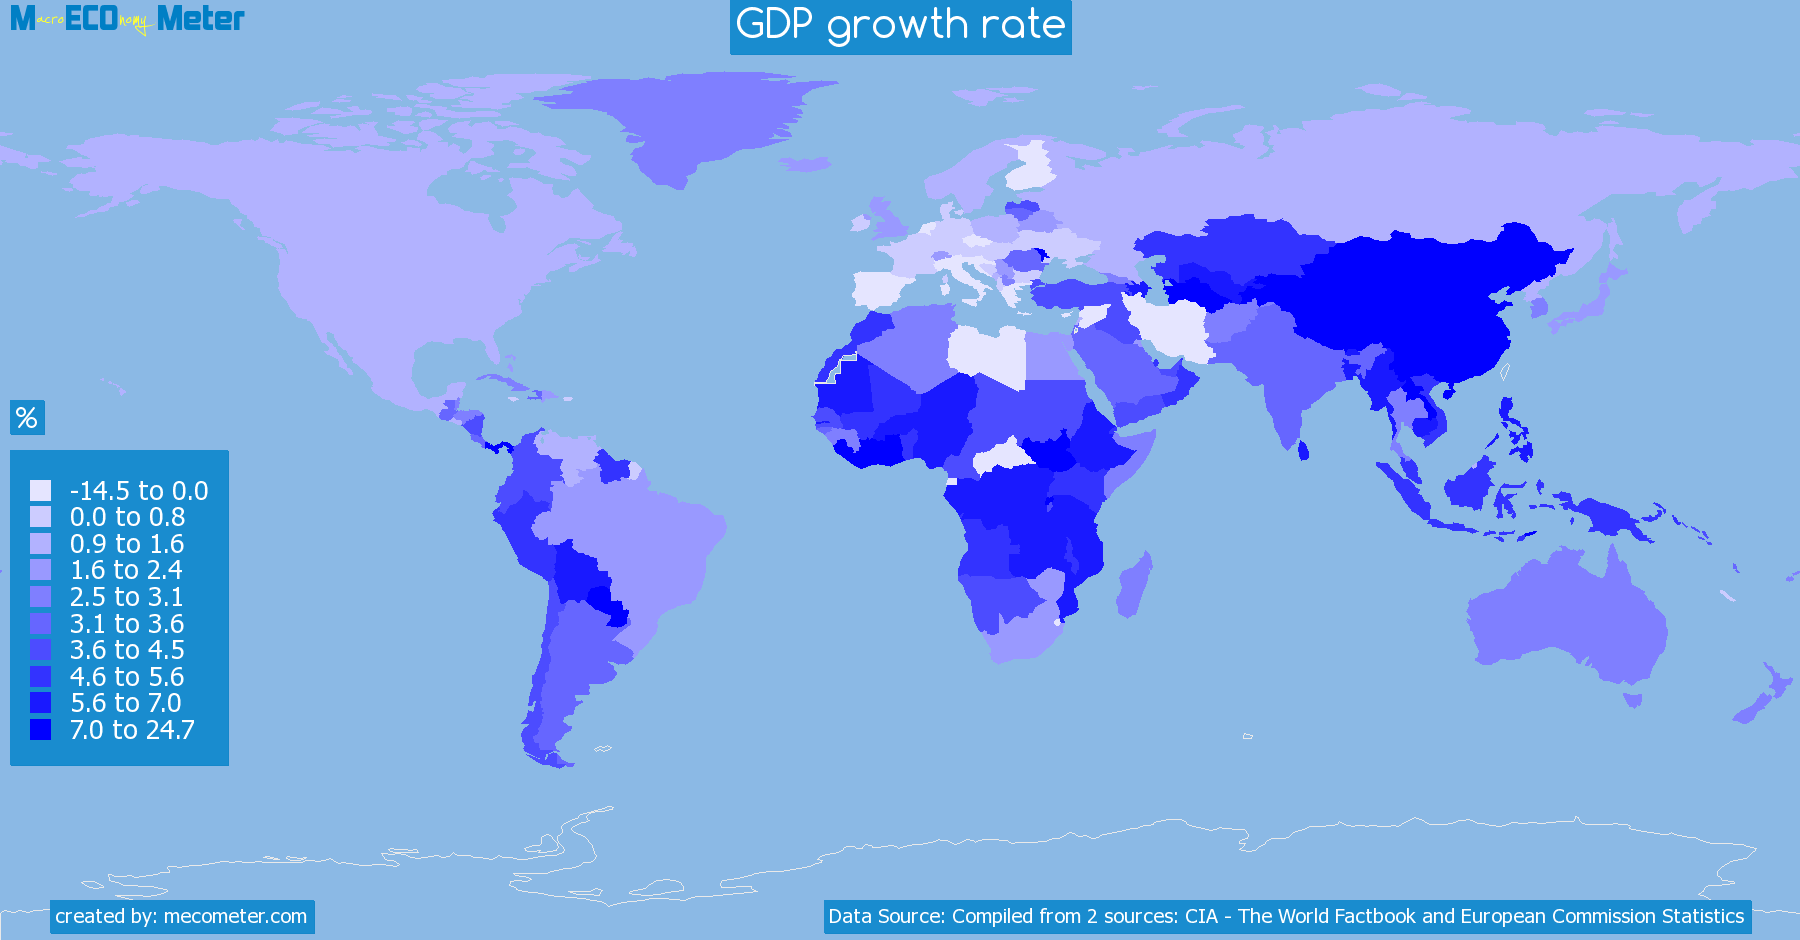 Worldmap of all countries colored to reflect the values of GDP growth rate